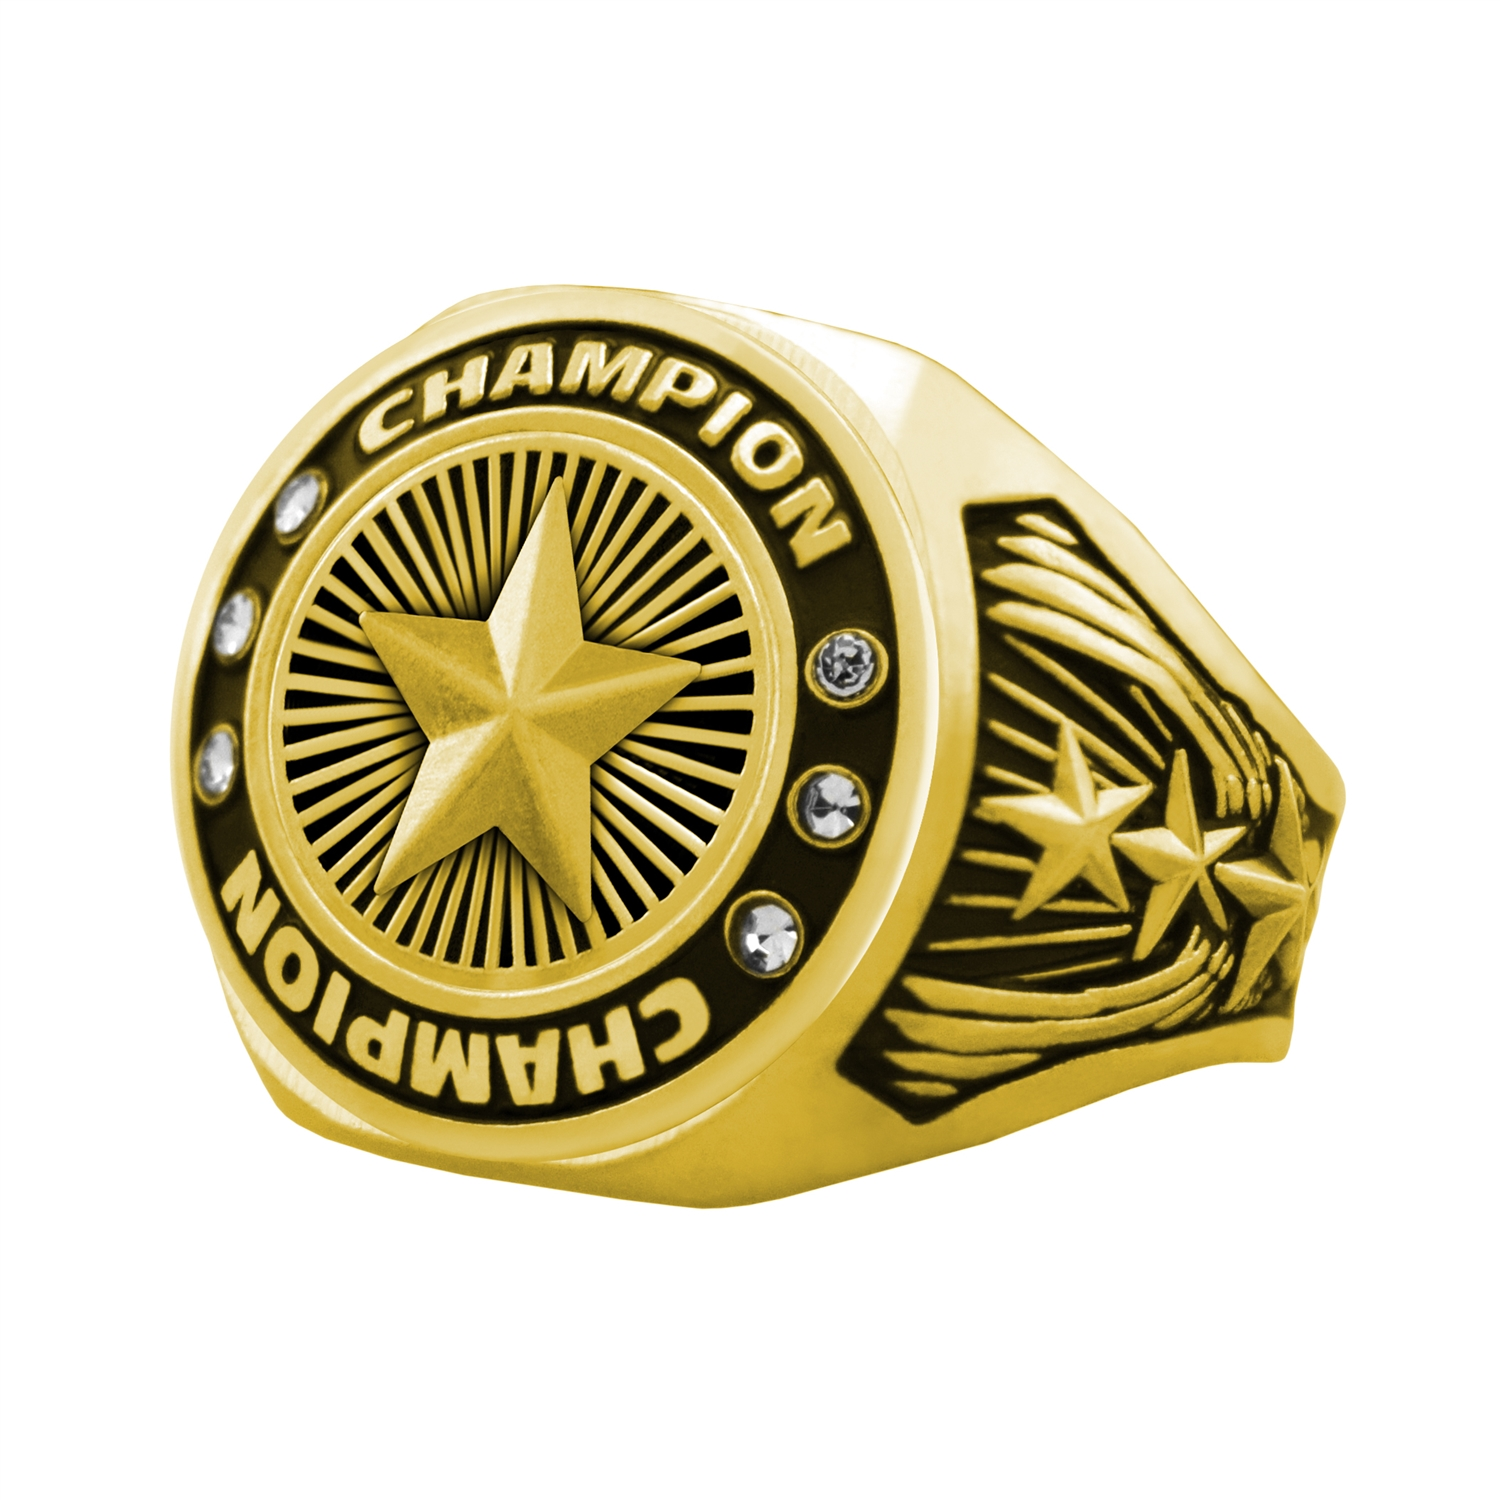 Champion Allstar Ring